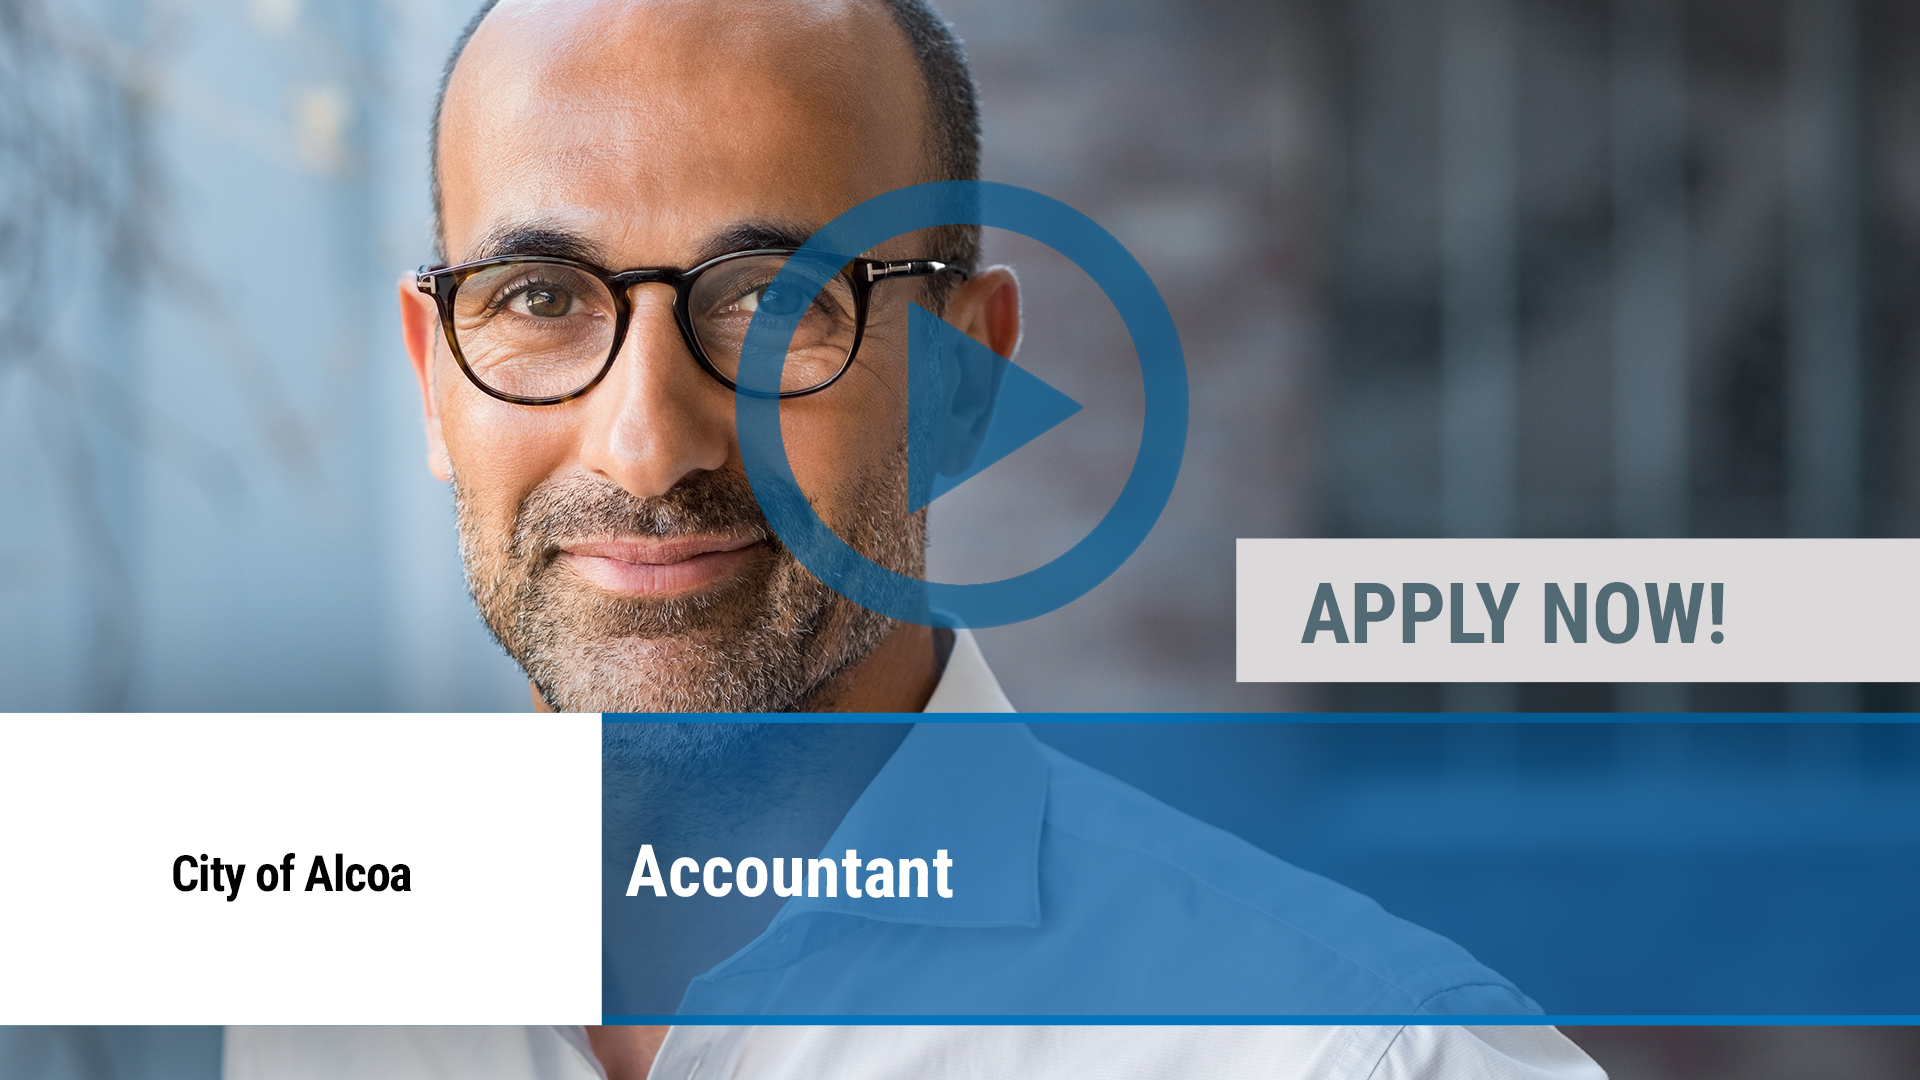 Watch our careers video for available job opening Accountant in Alcoa, TN